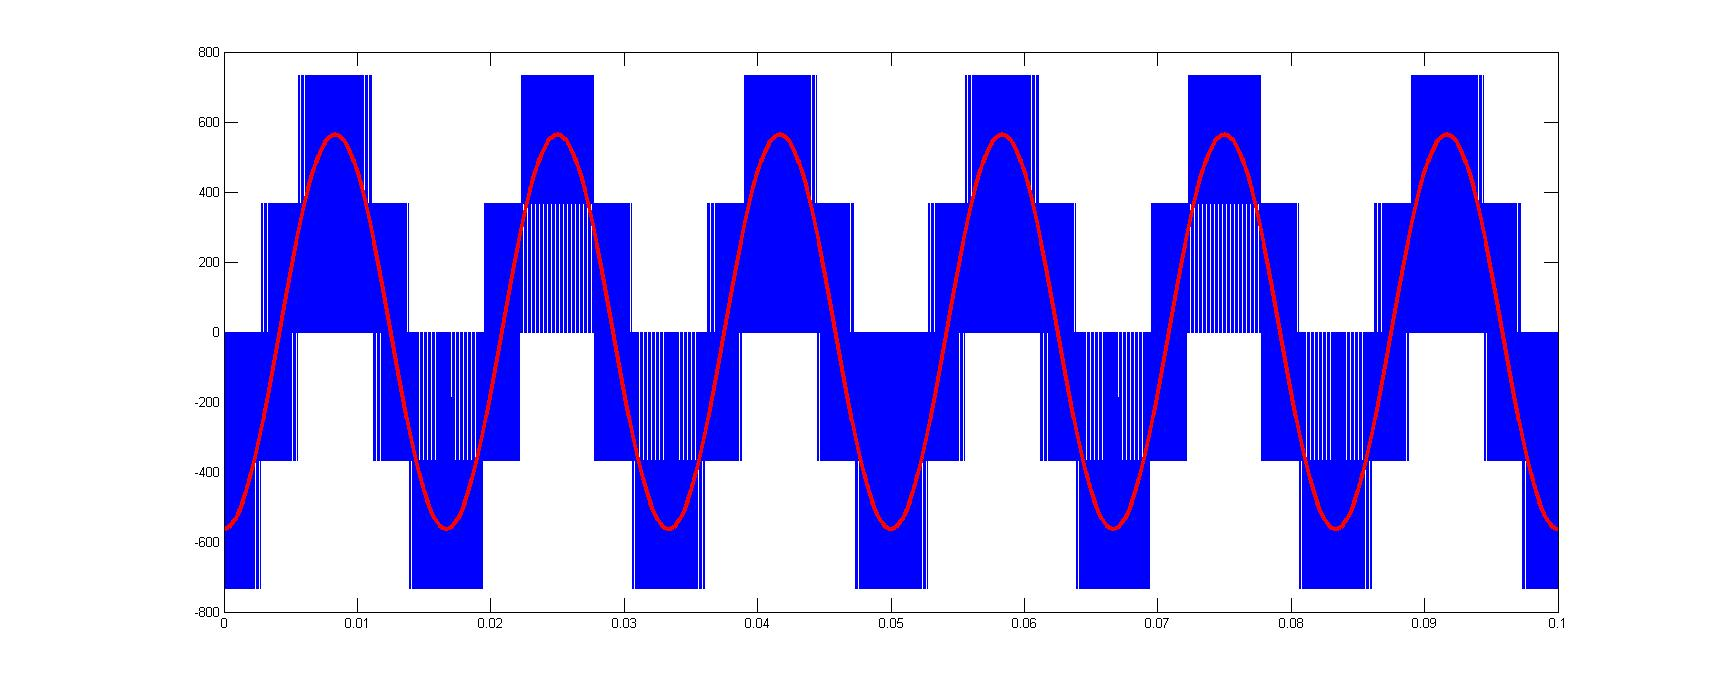 Sinusoidal Pwm With Third Harmonic File Exchange Matlab Central Pulse Width Modulation 8211 What Is It